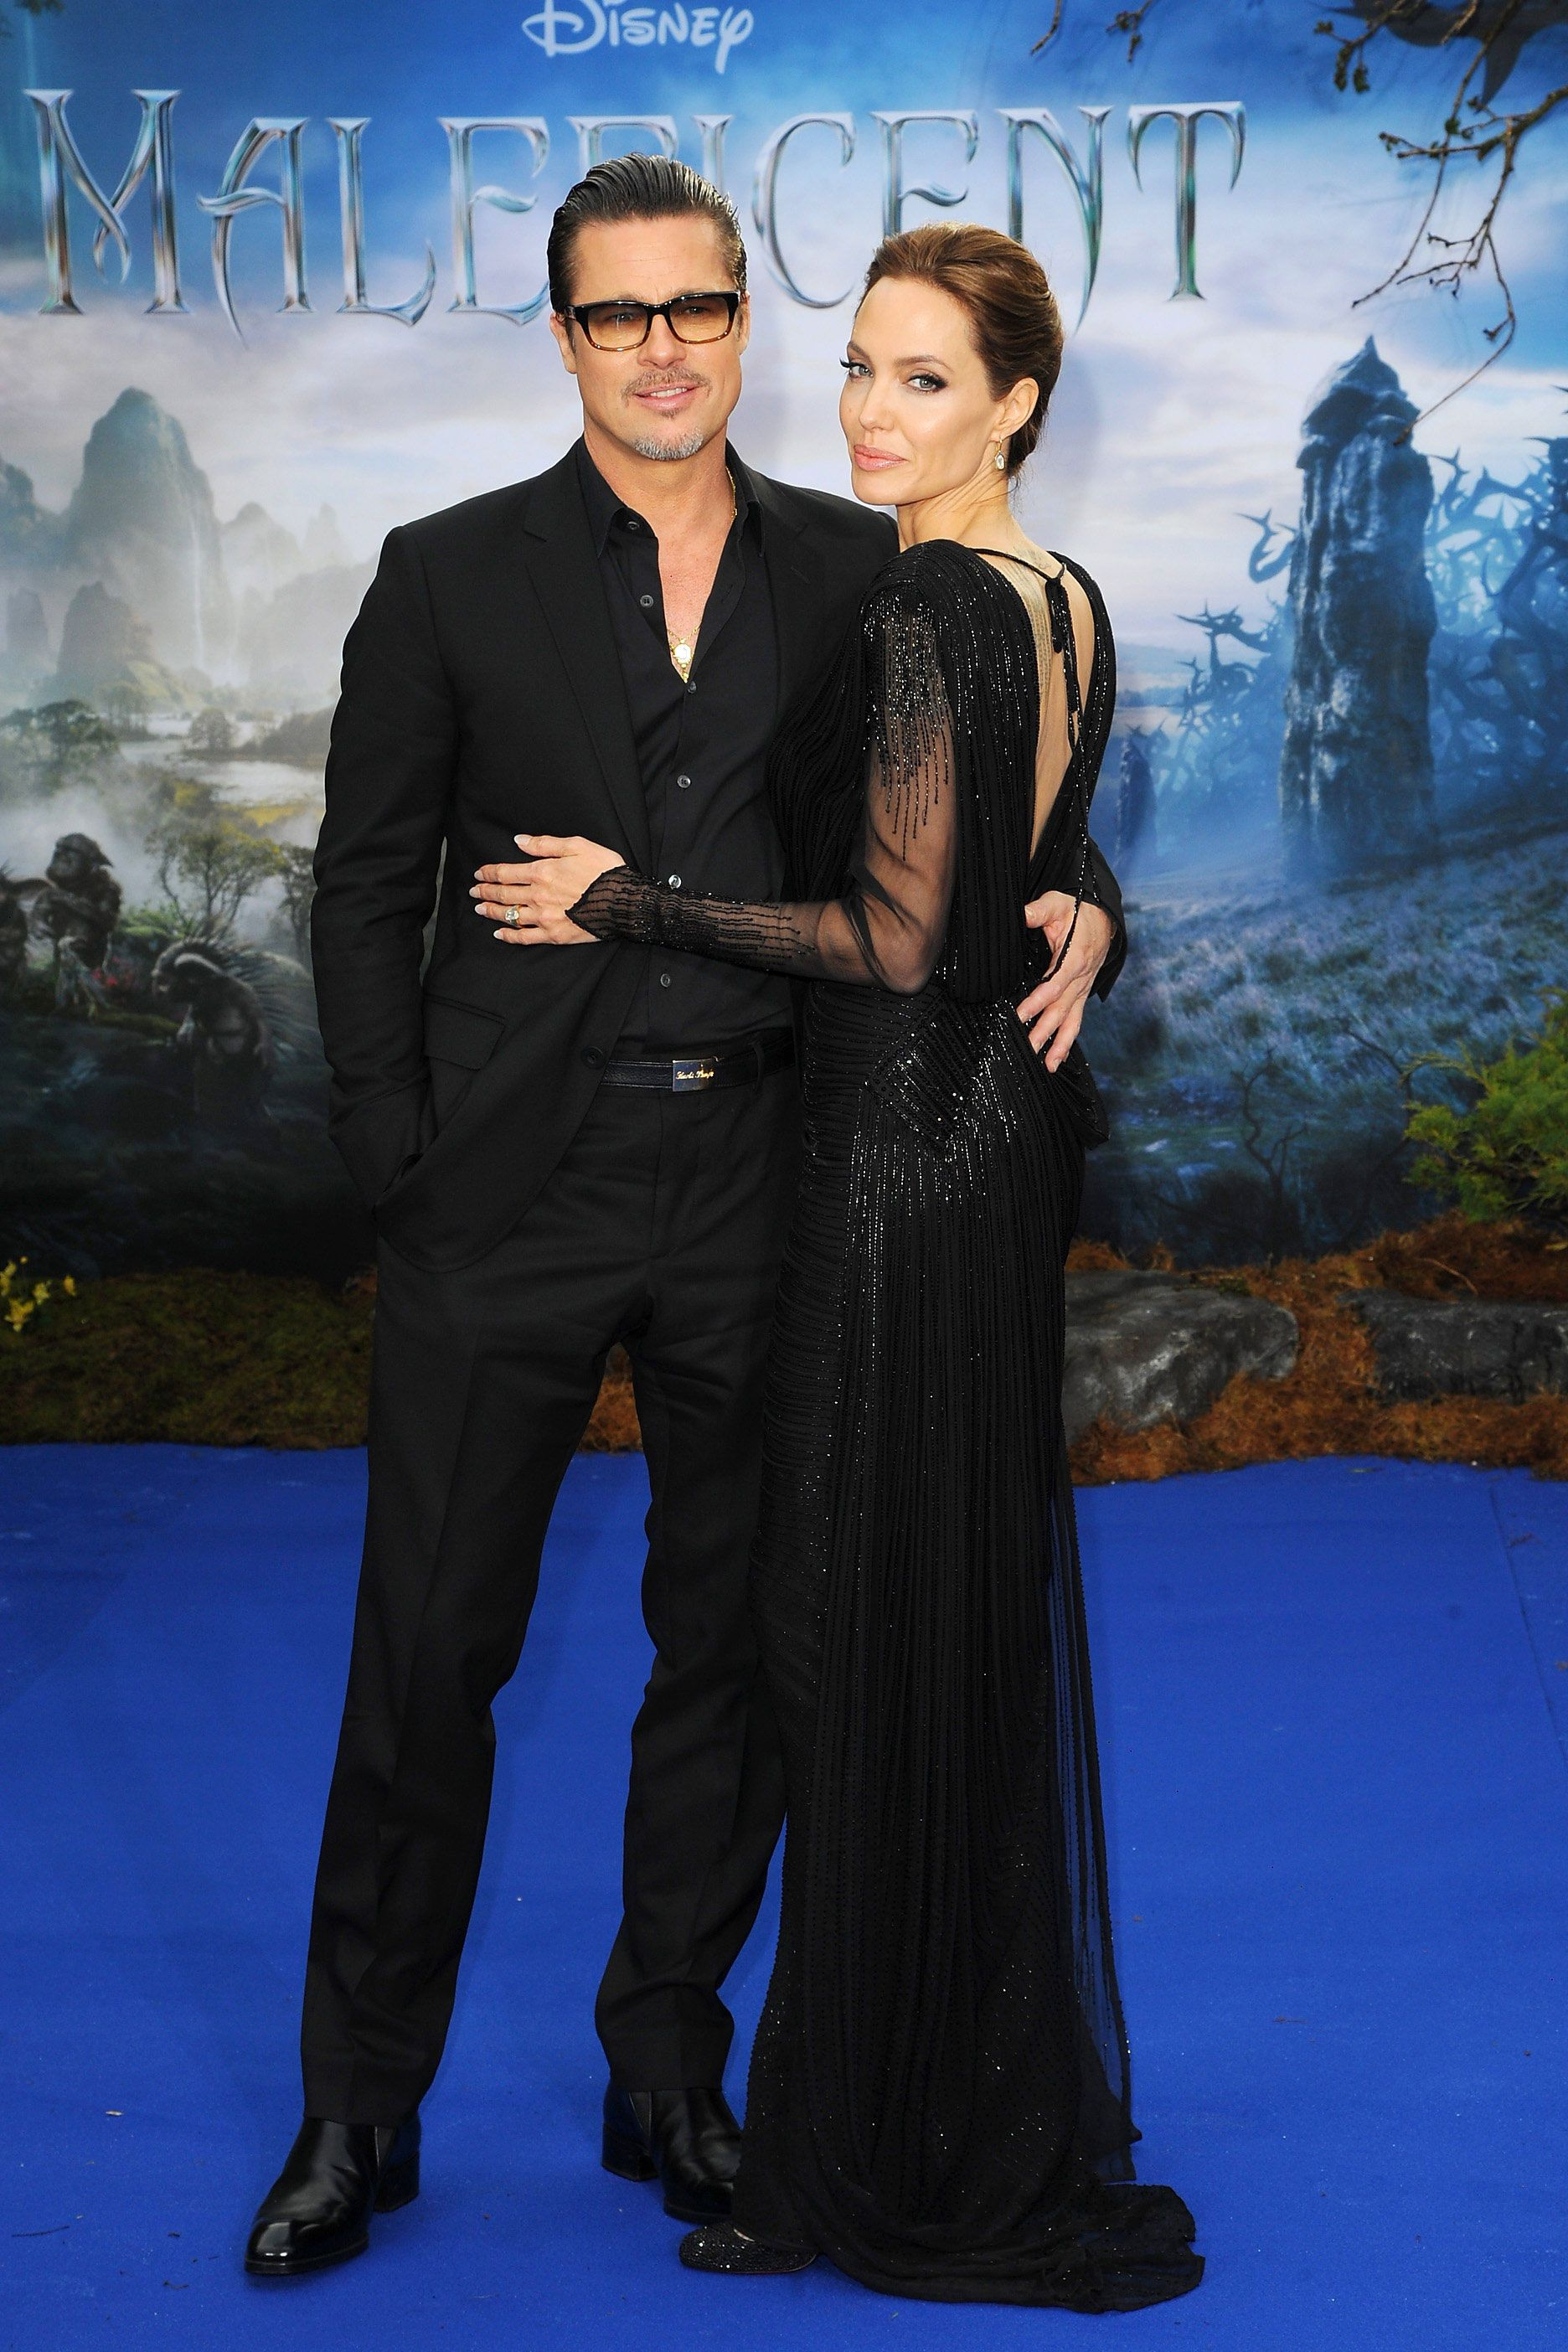 At Disney's Maleficent costumes and props private reception in support of Great Ormond Street Hospital at Kensington Palace in London on May 8, 2014. - Cosmopolitan.com